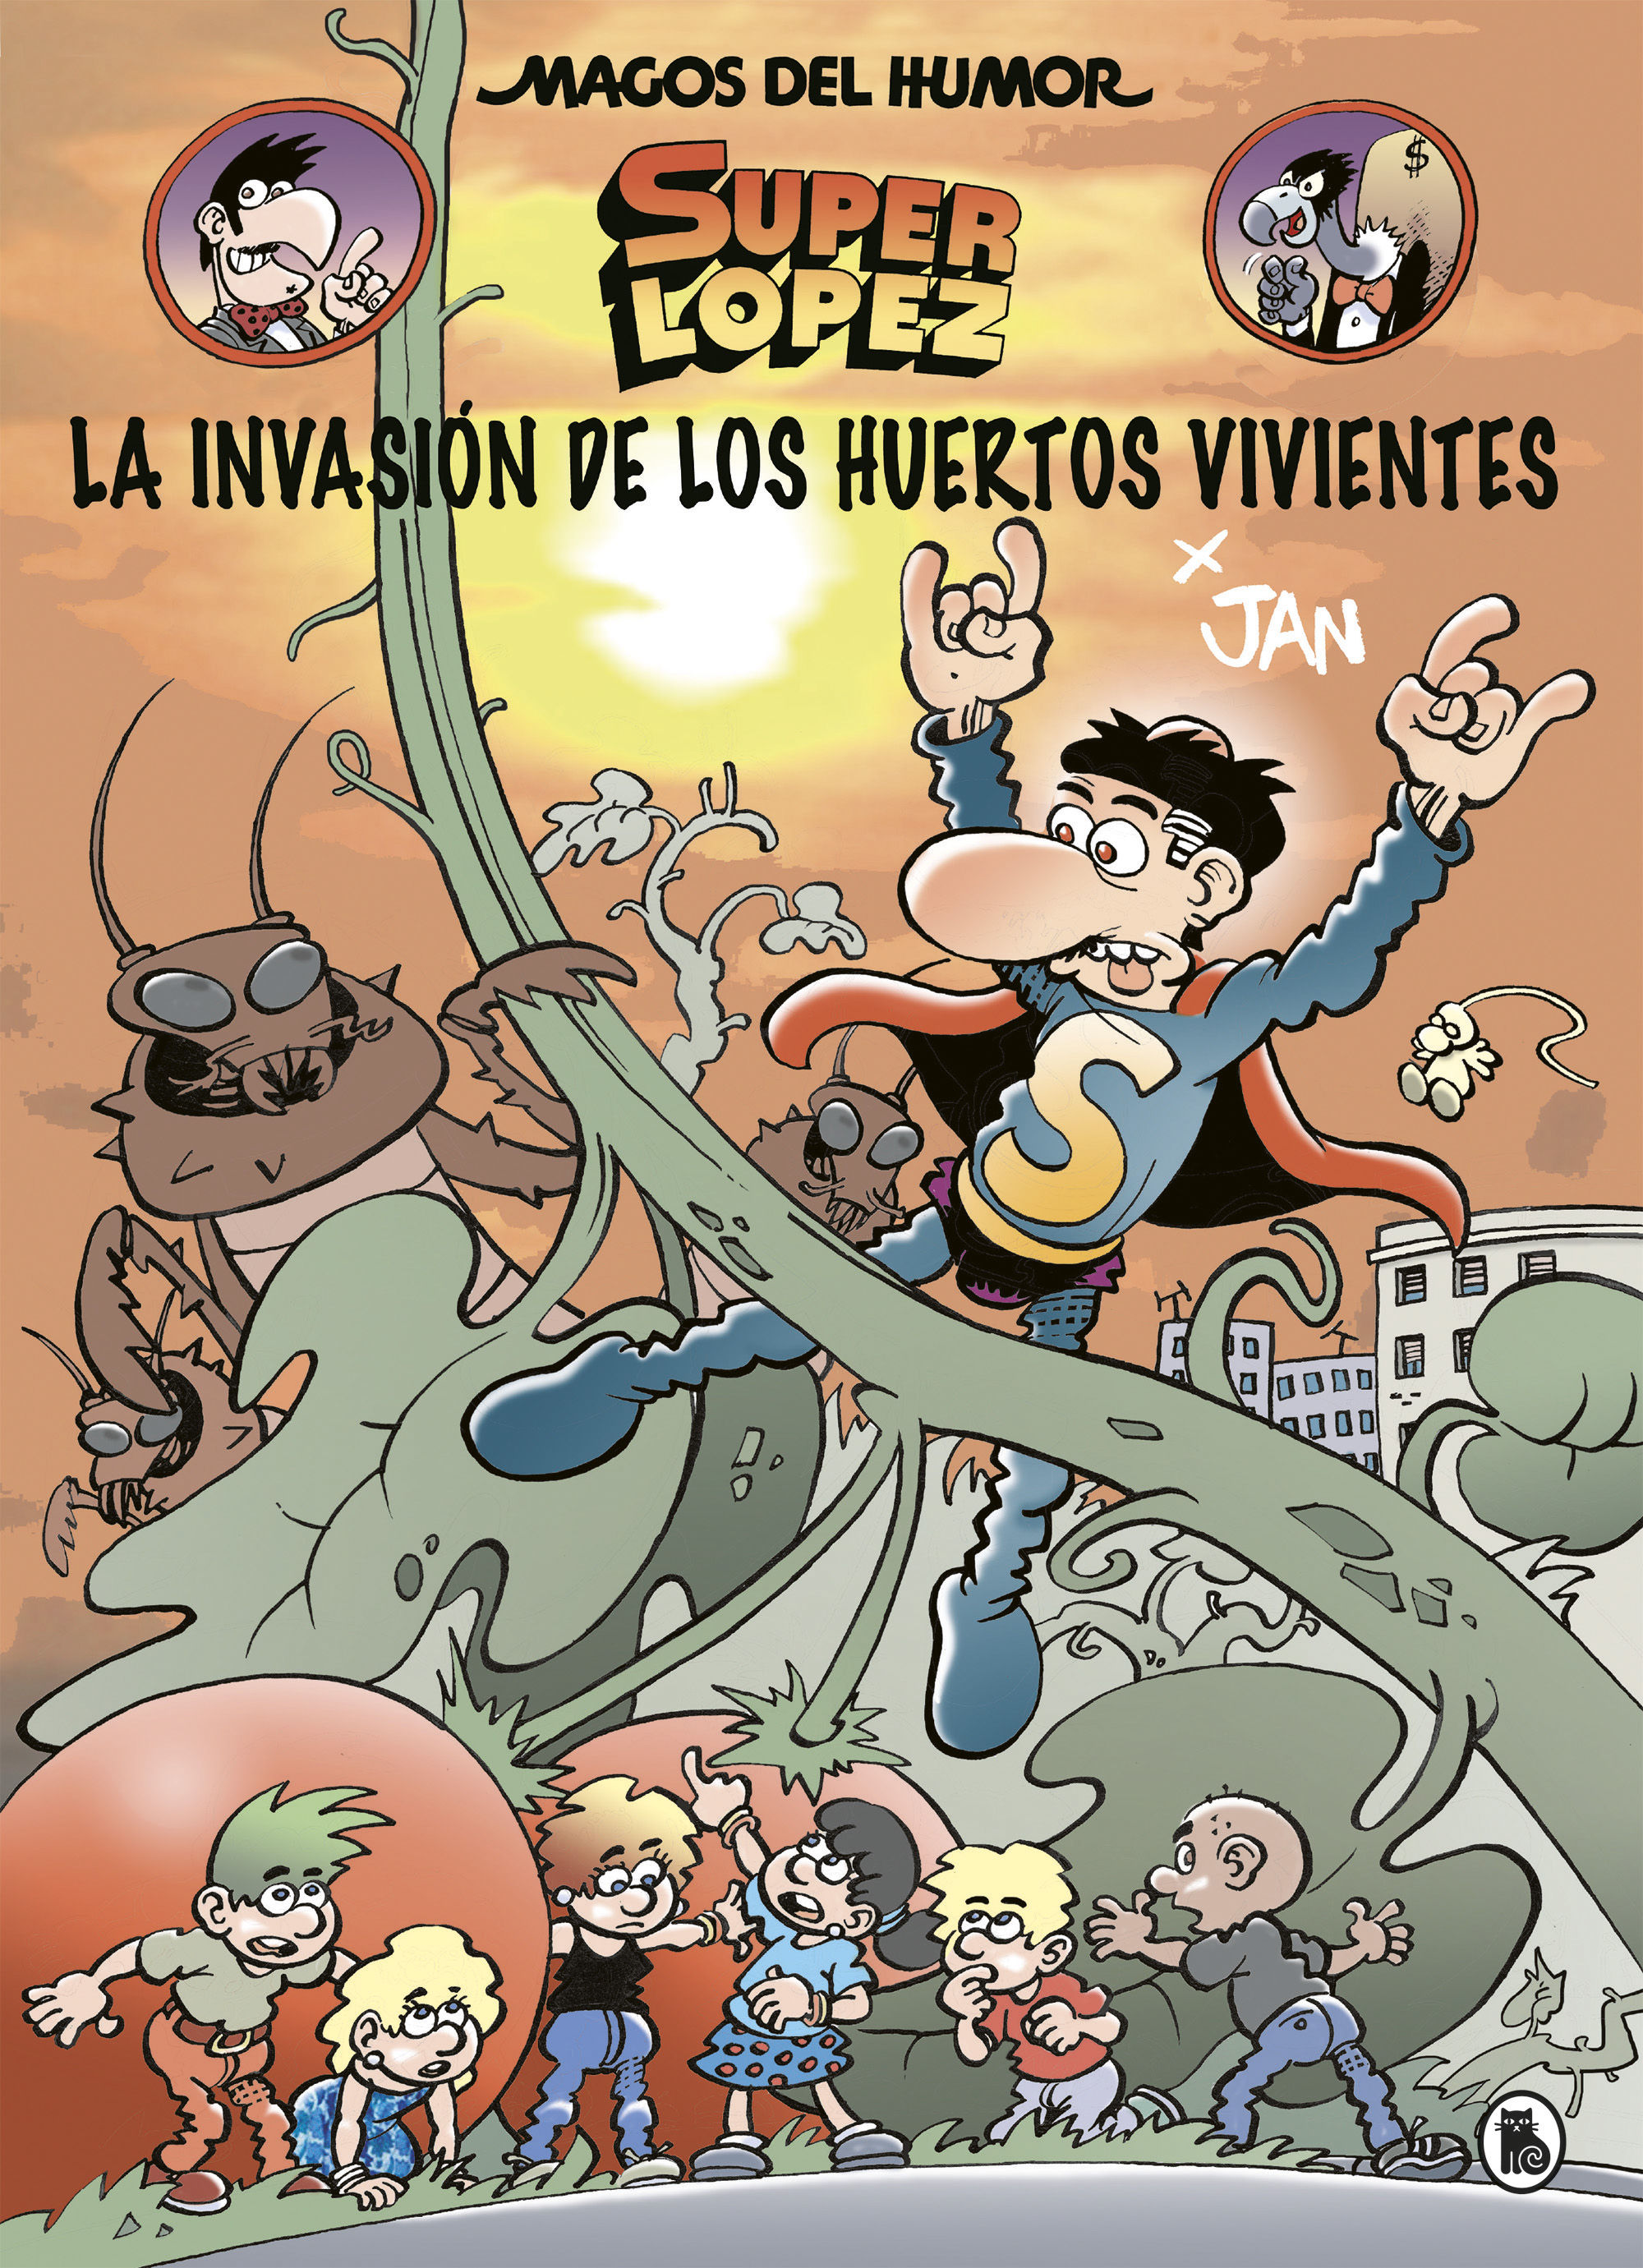 MAGOS DEL HUMOR SUPERLOPEZ 206.INVASION